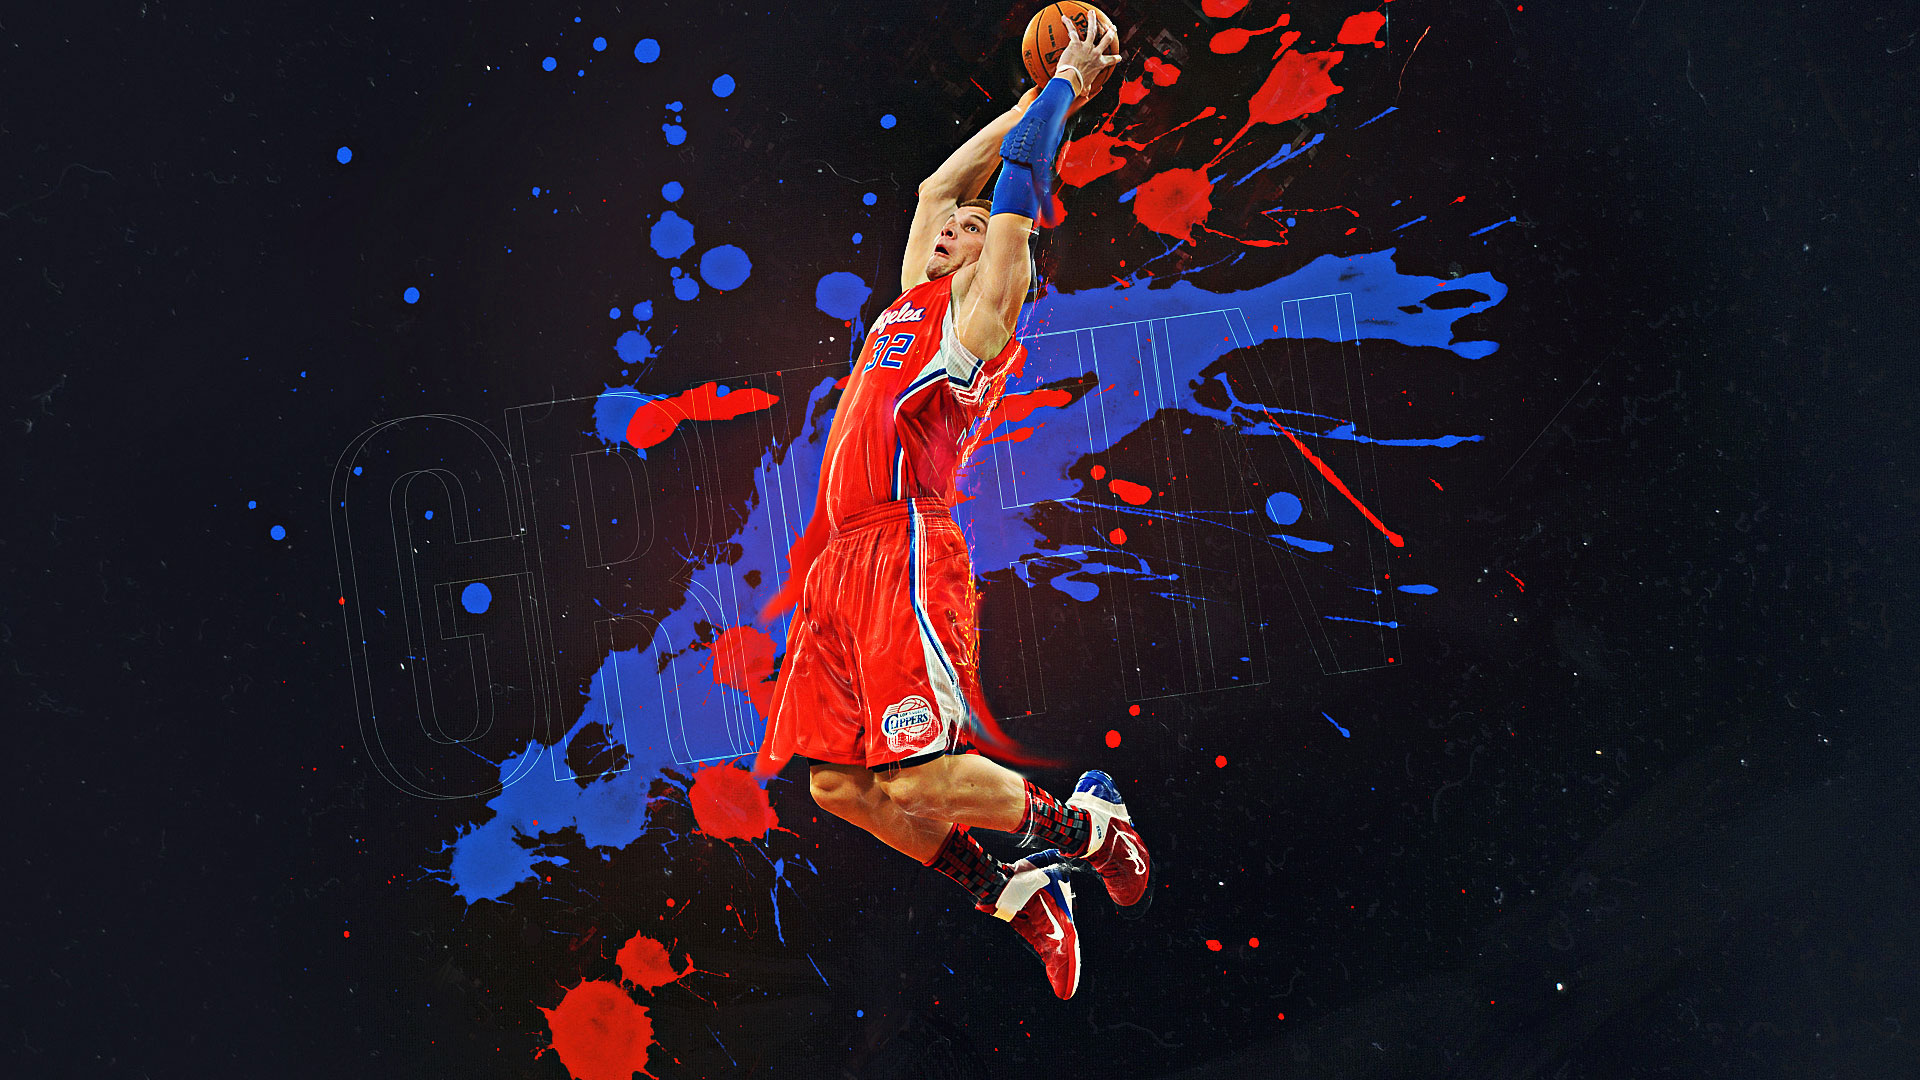 Get The Latest Hd And Mobile Nba Wallpapers Today: Blake Griffin Wallpapers